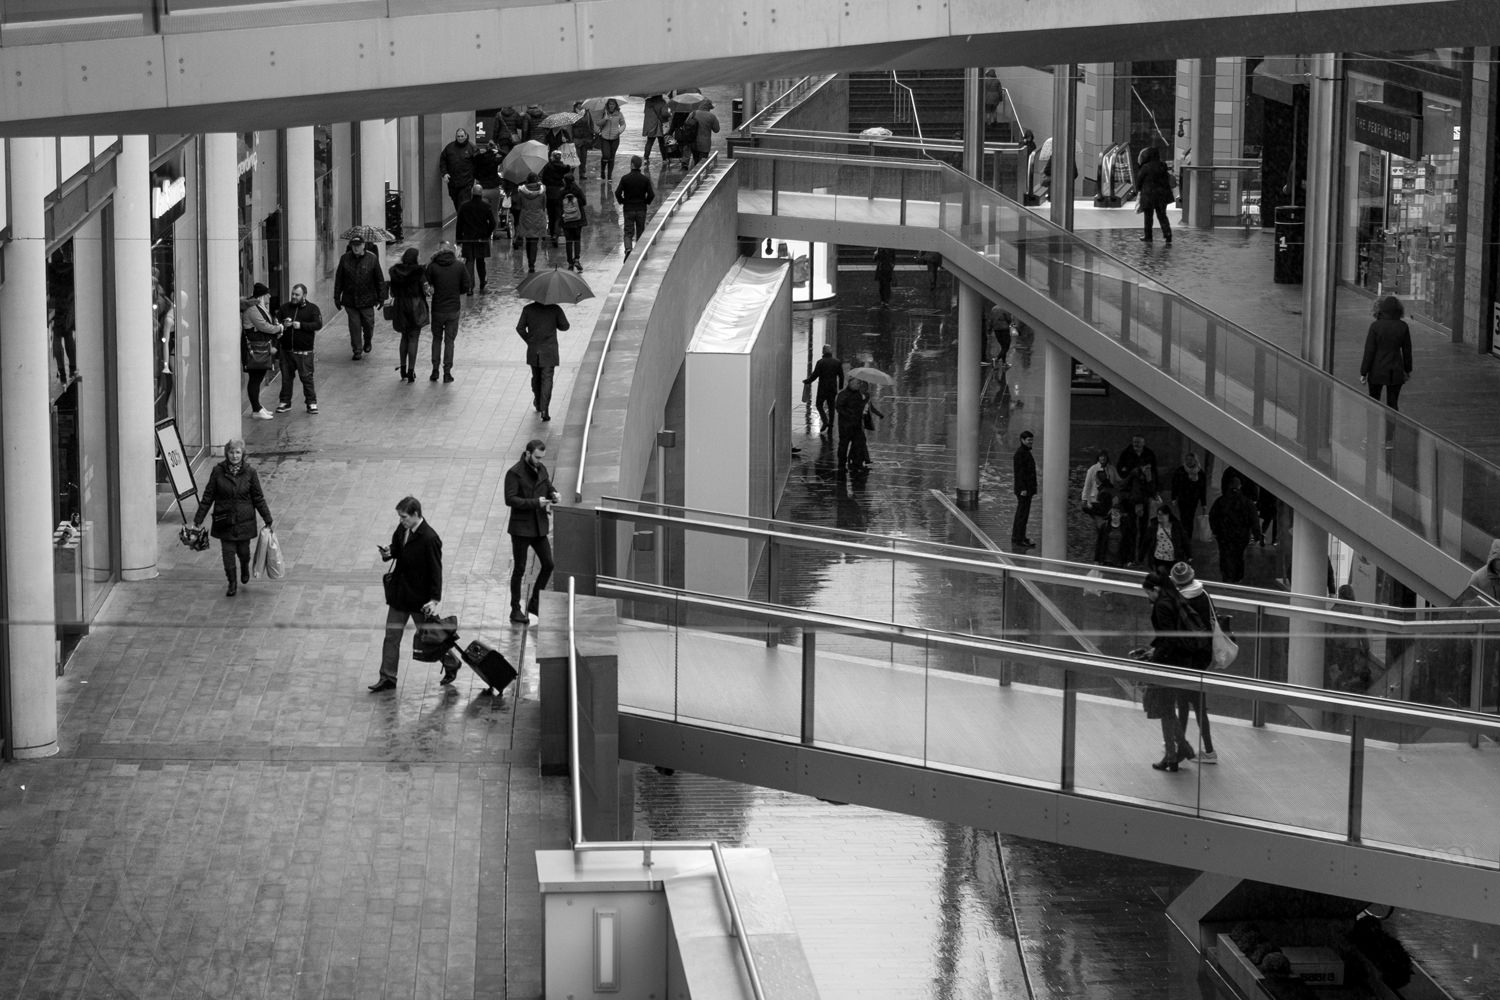 Looking down into the Liverpool One shopping centre. There's lots of people with umbrellas and bags